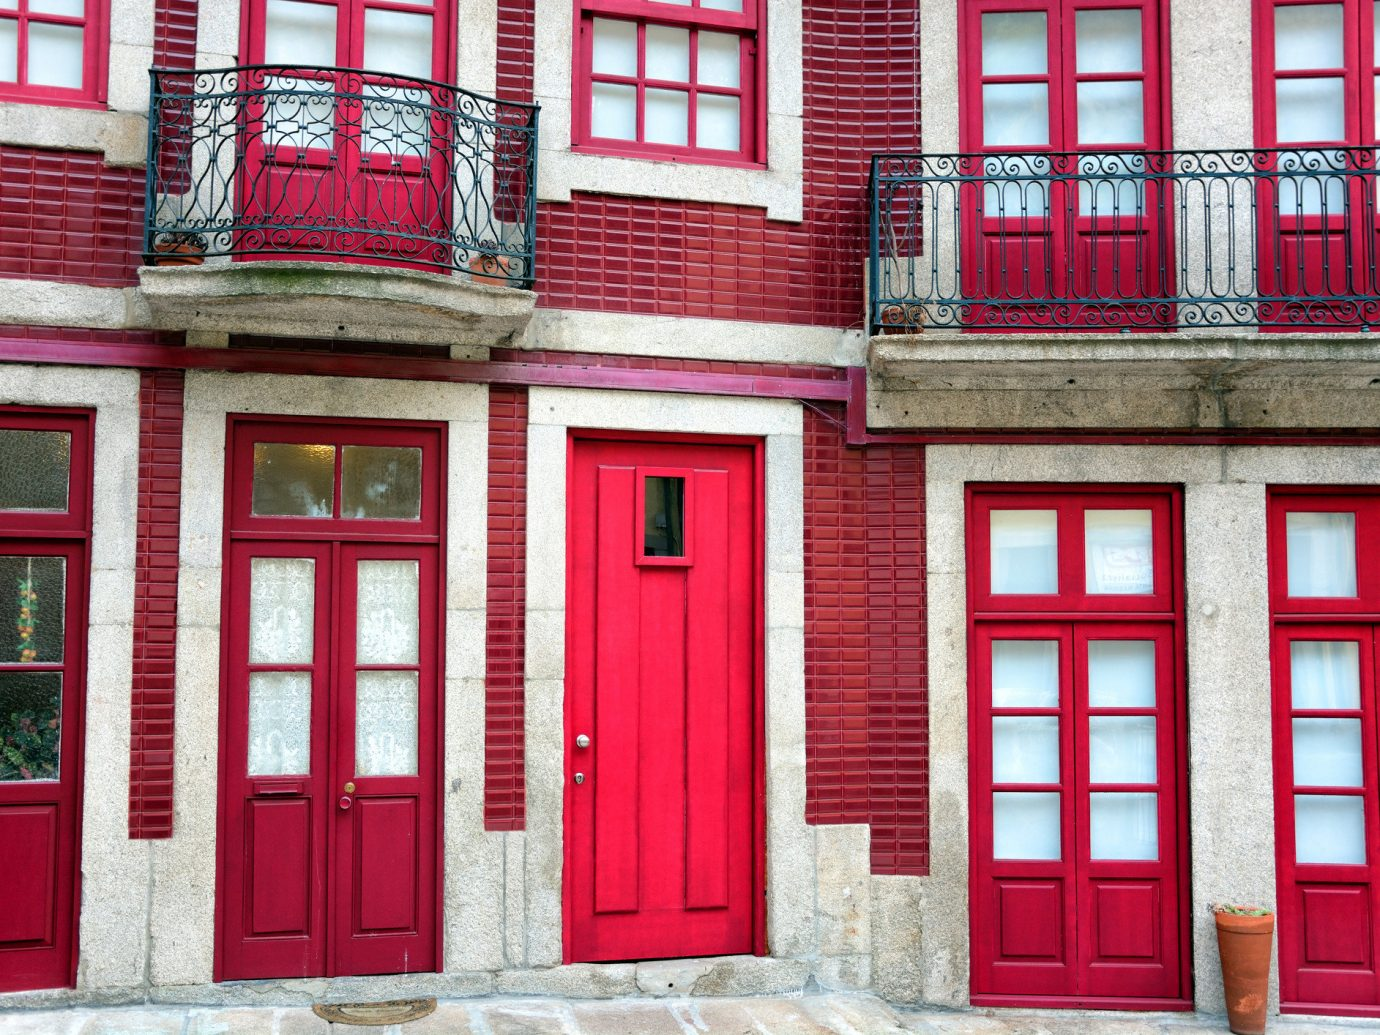 Offbeat Trip Ideas building outdoor red color house Architecture facade window door interior design window covering